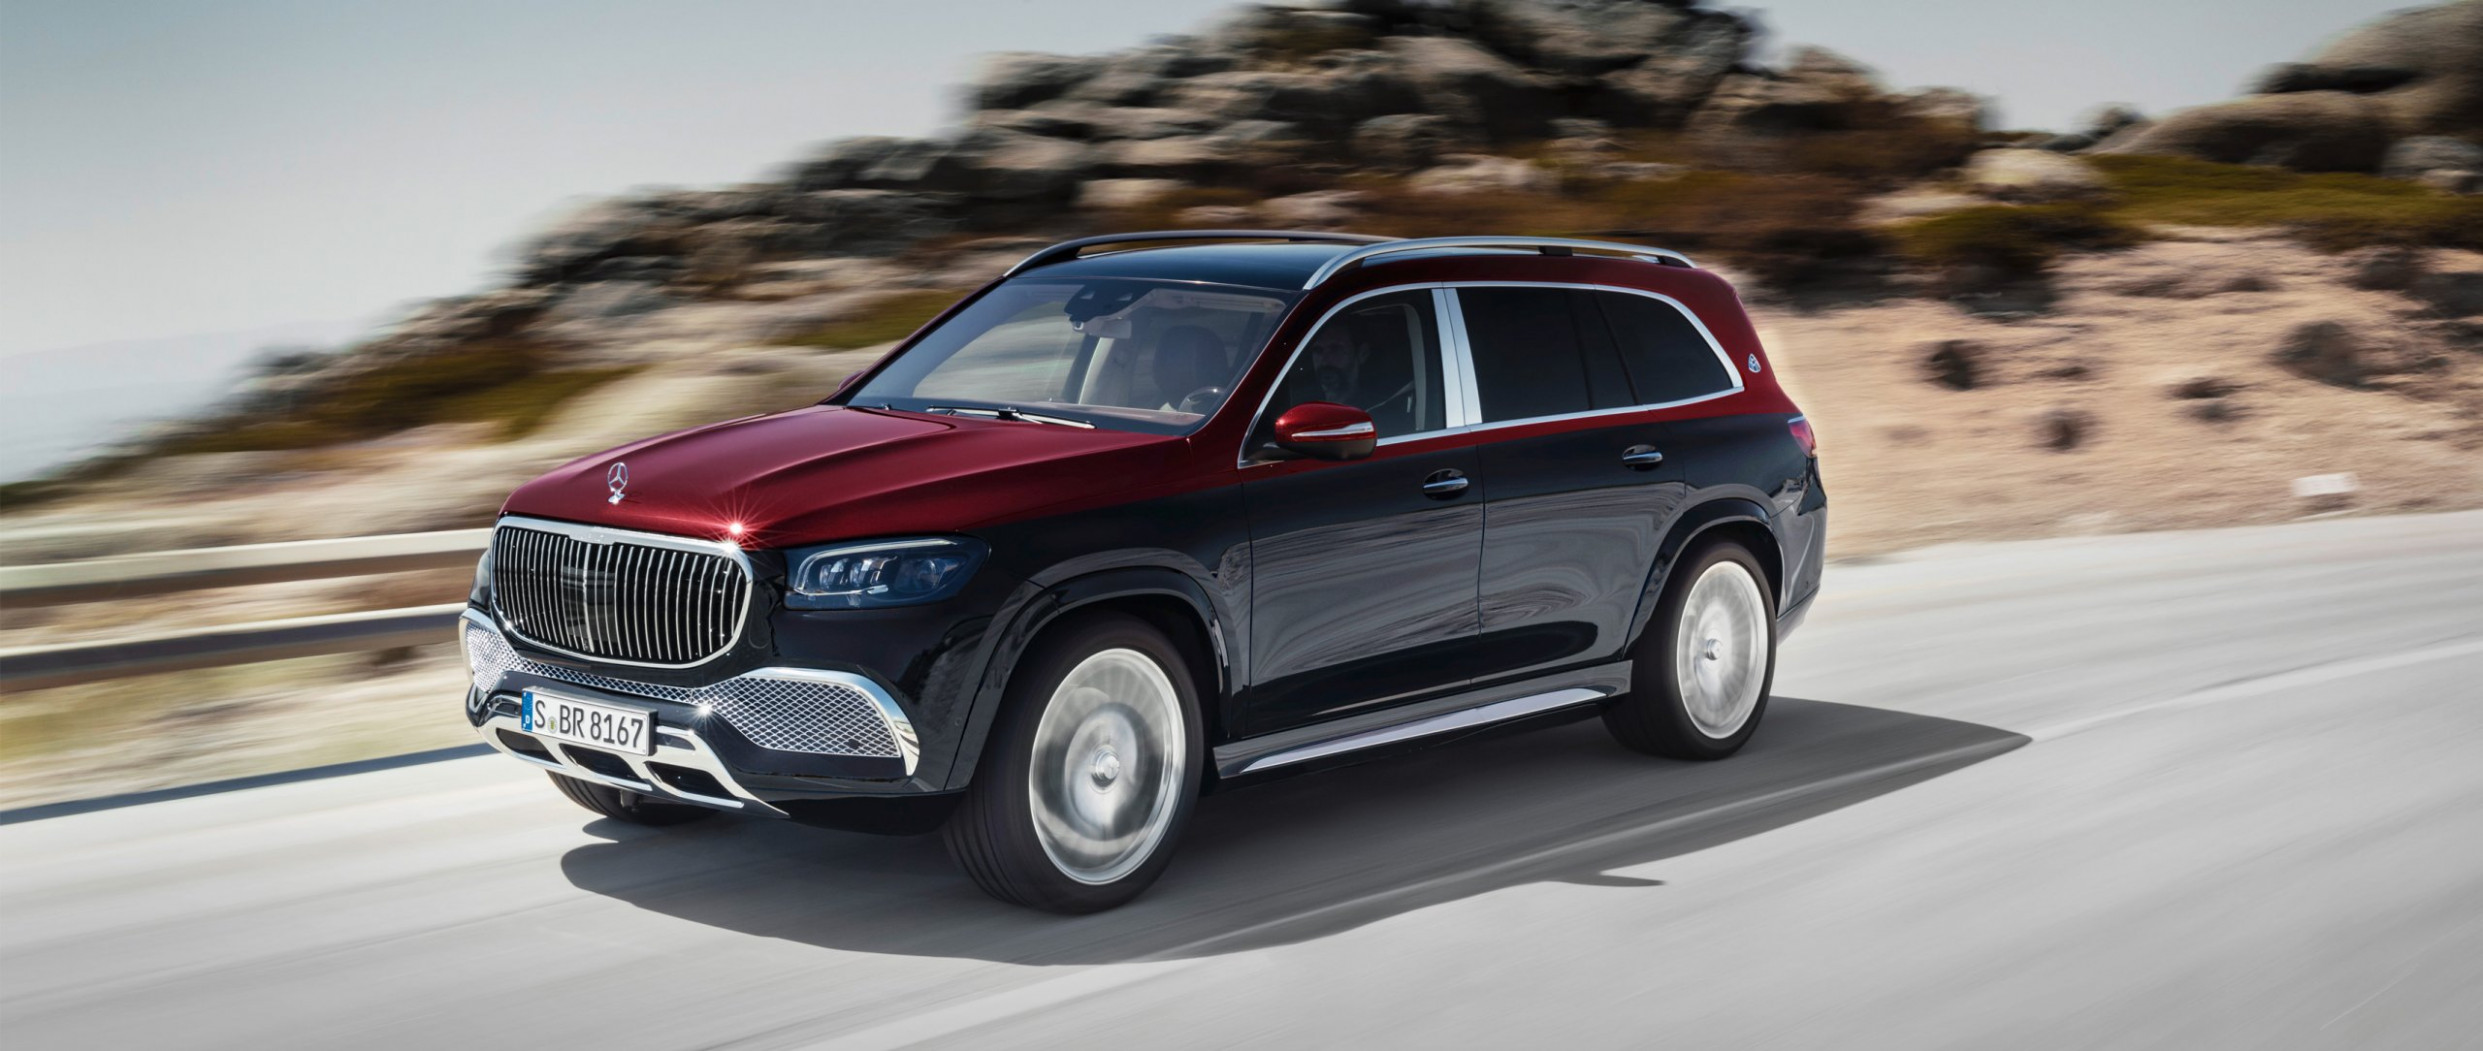 The new Mercedes-Maybach GLS